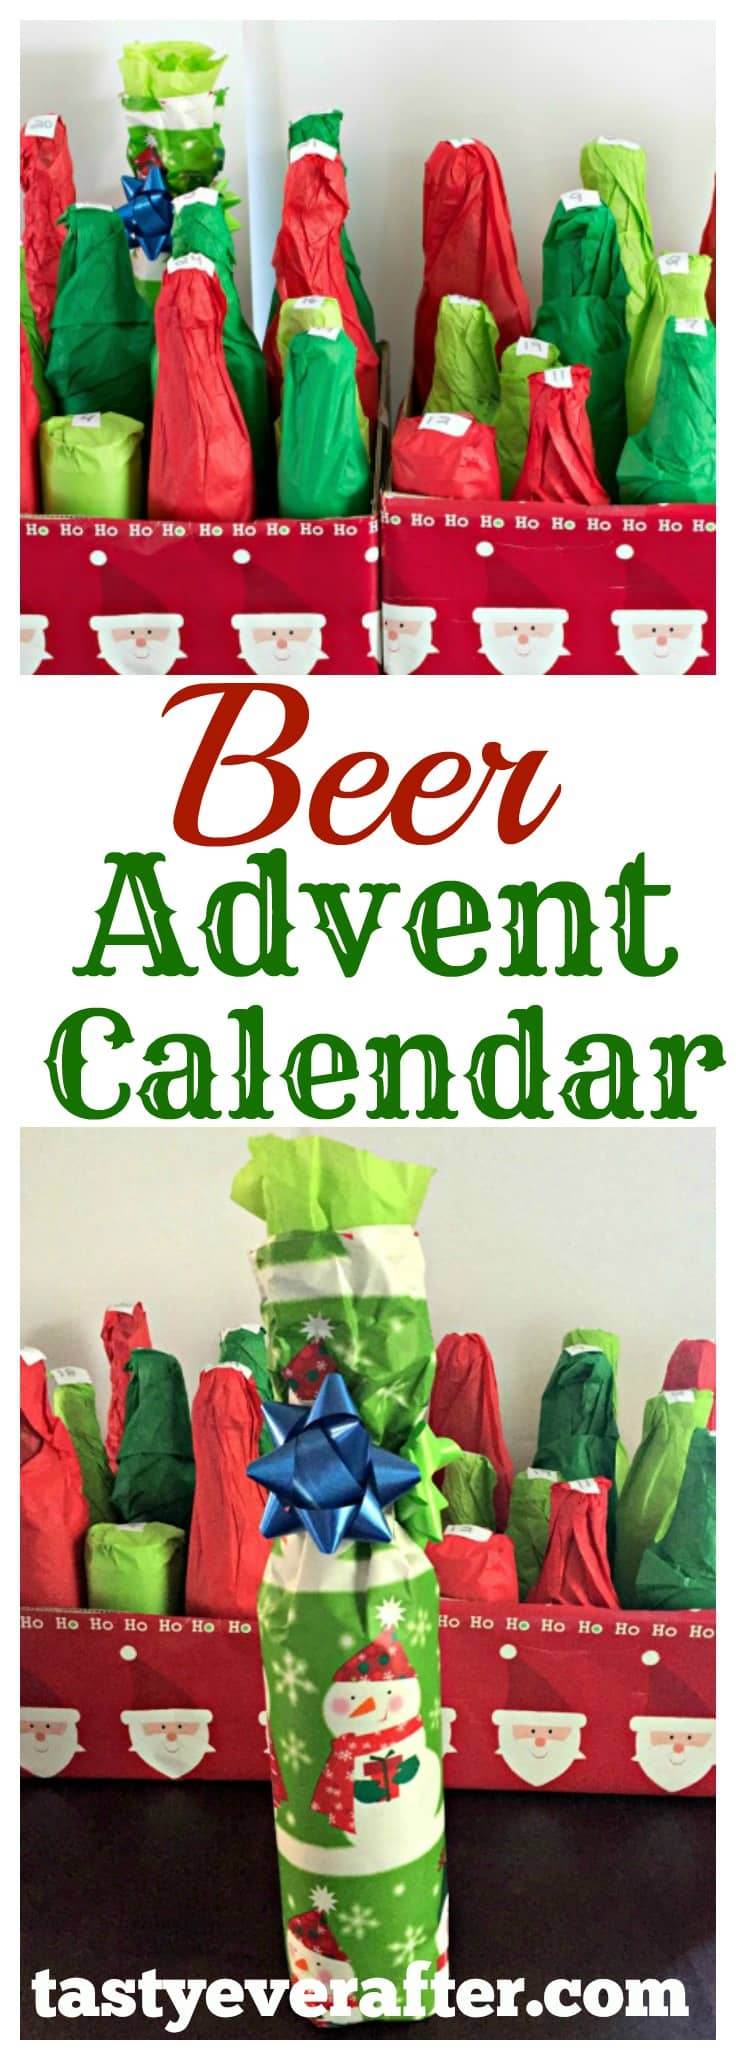 Advent Calendar Ideas Wife : Diy beer advent calendar do it your self